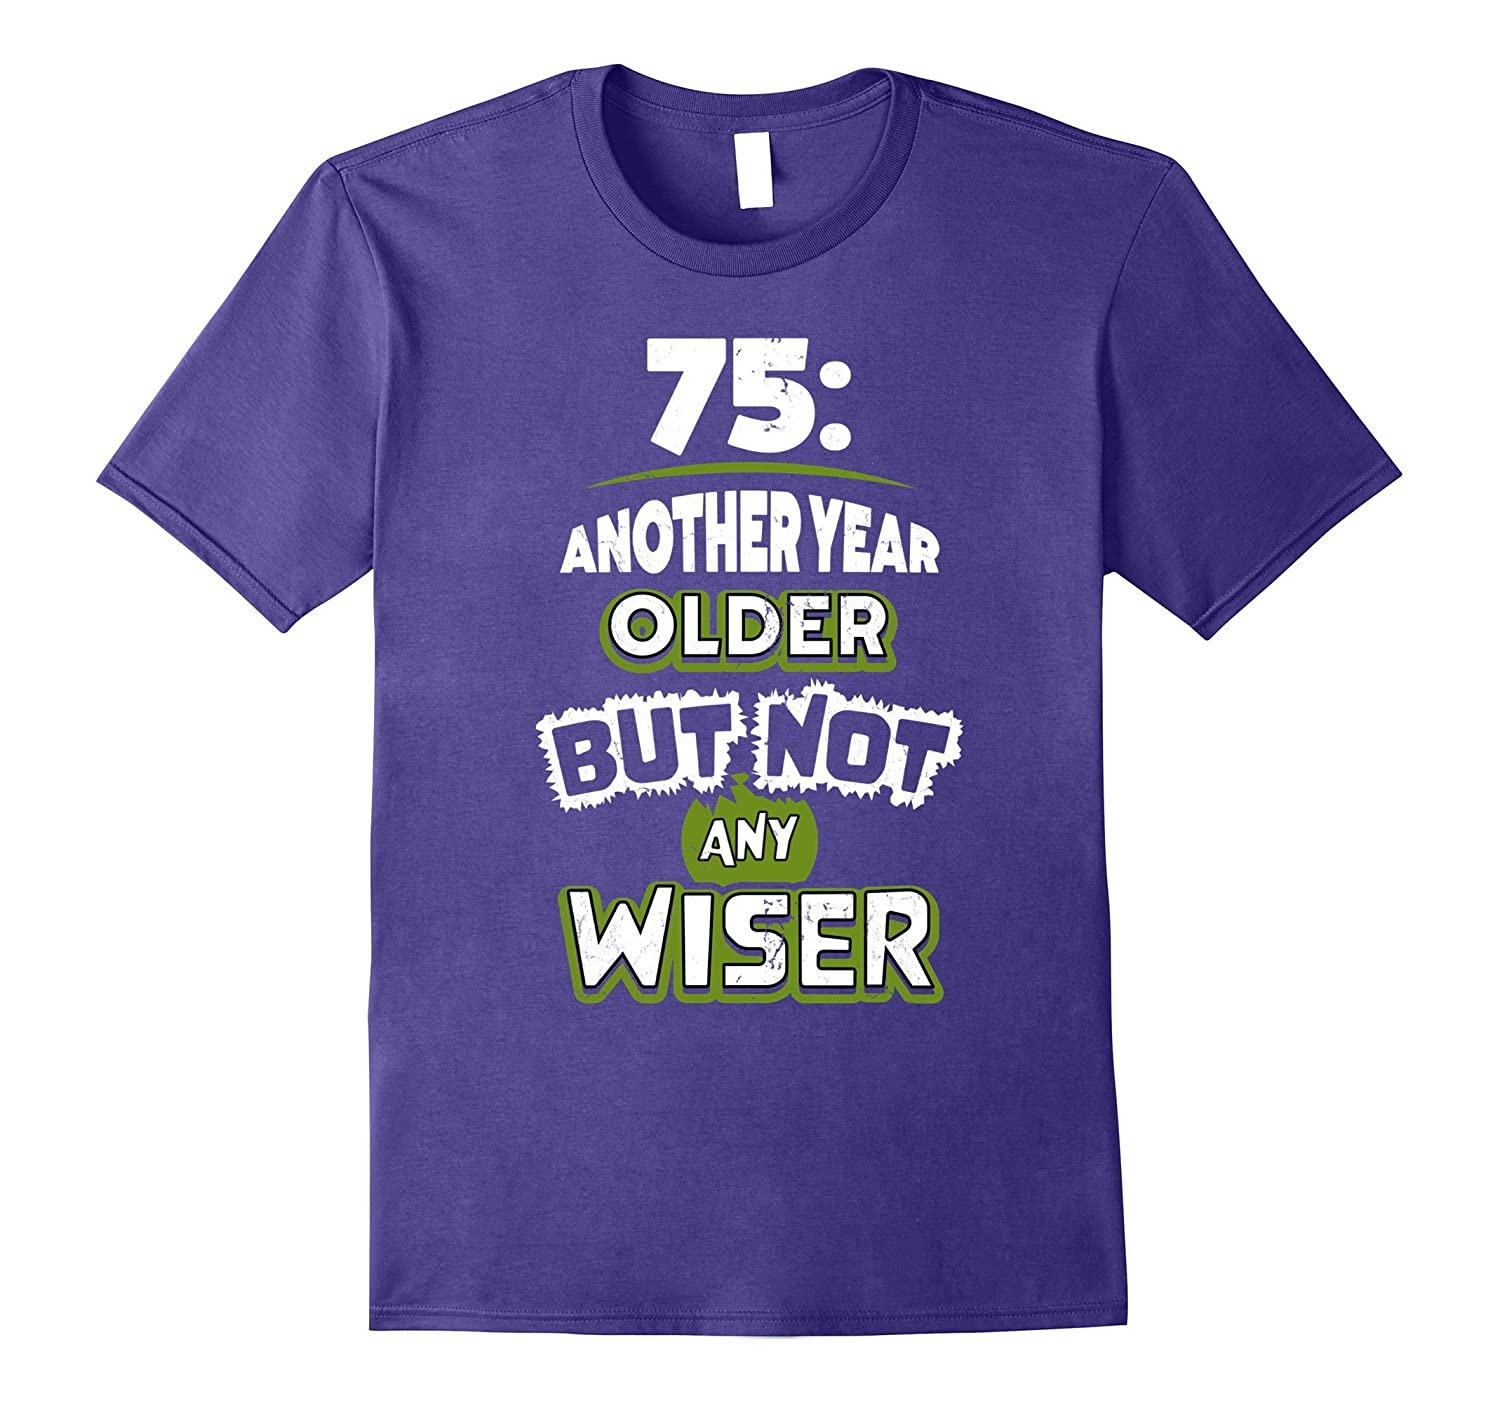 75th Birthday Gift Idea For Men 75 Year Old T Shirt PL Polozatee